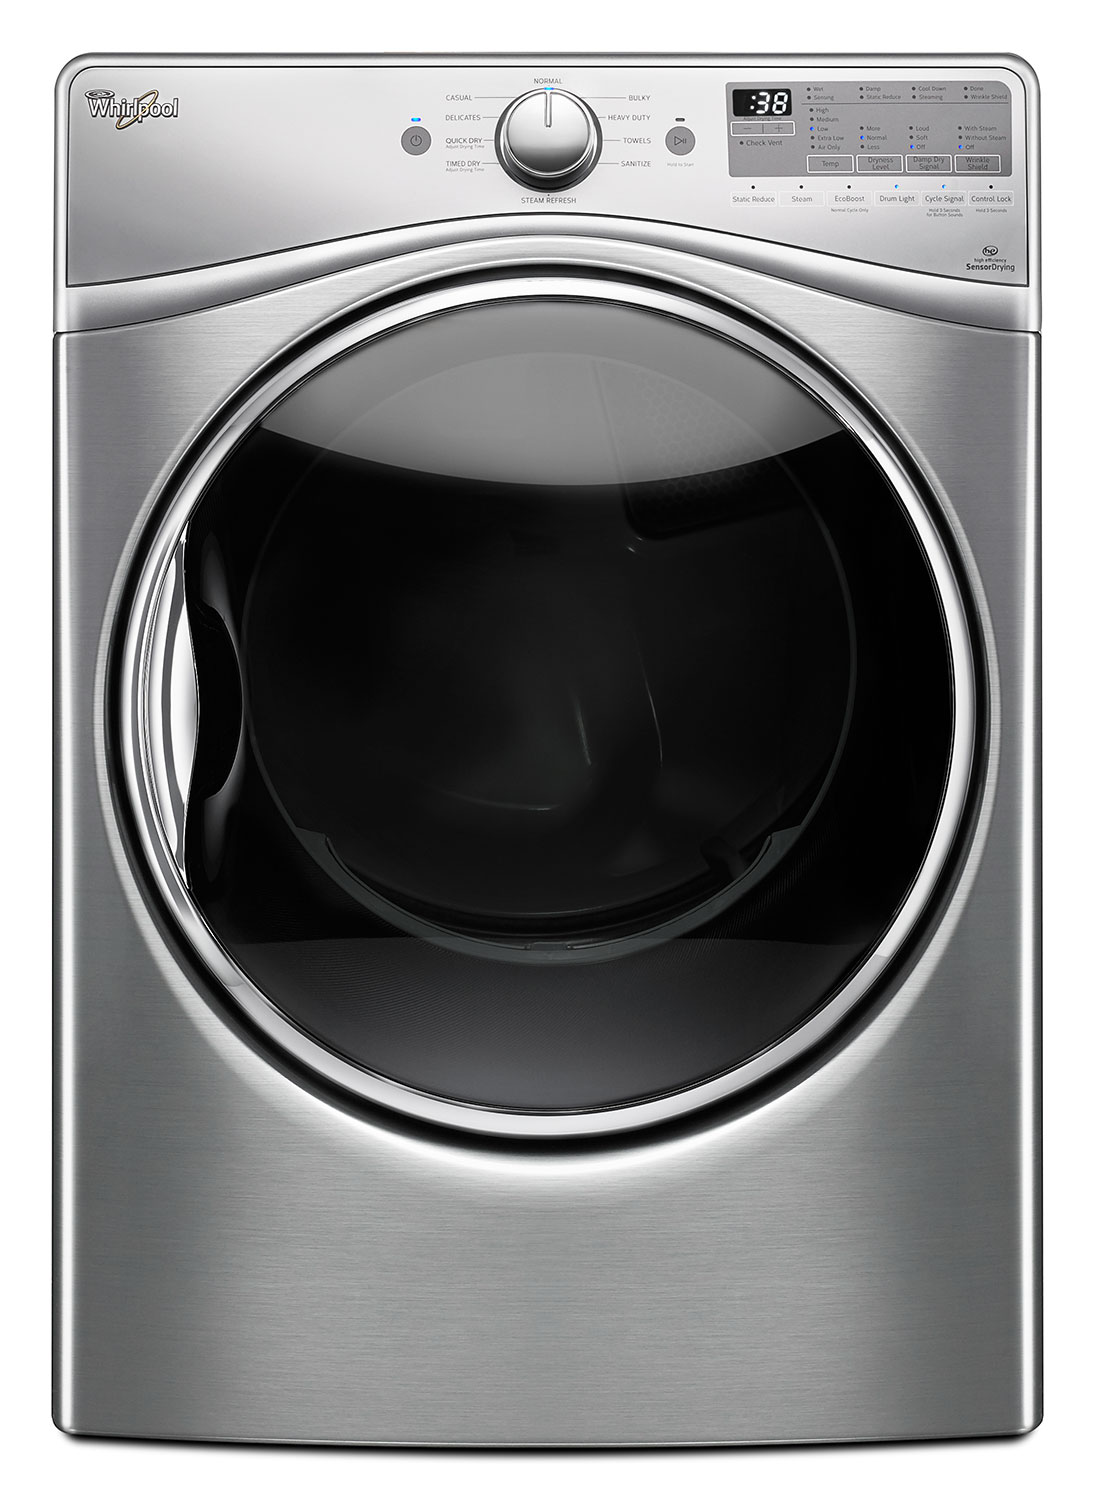 Whirlpool 7.4 Cu. Ft. Electric Dryer – YWED92HEFU